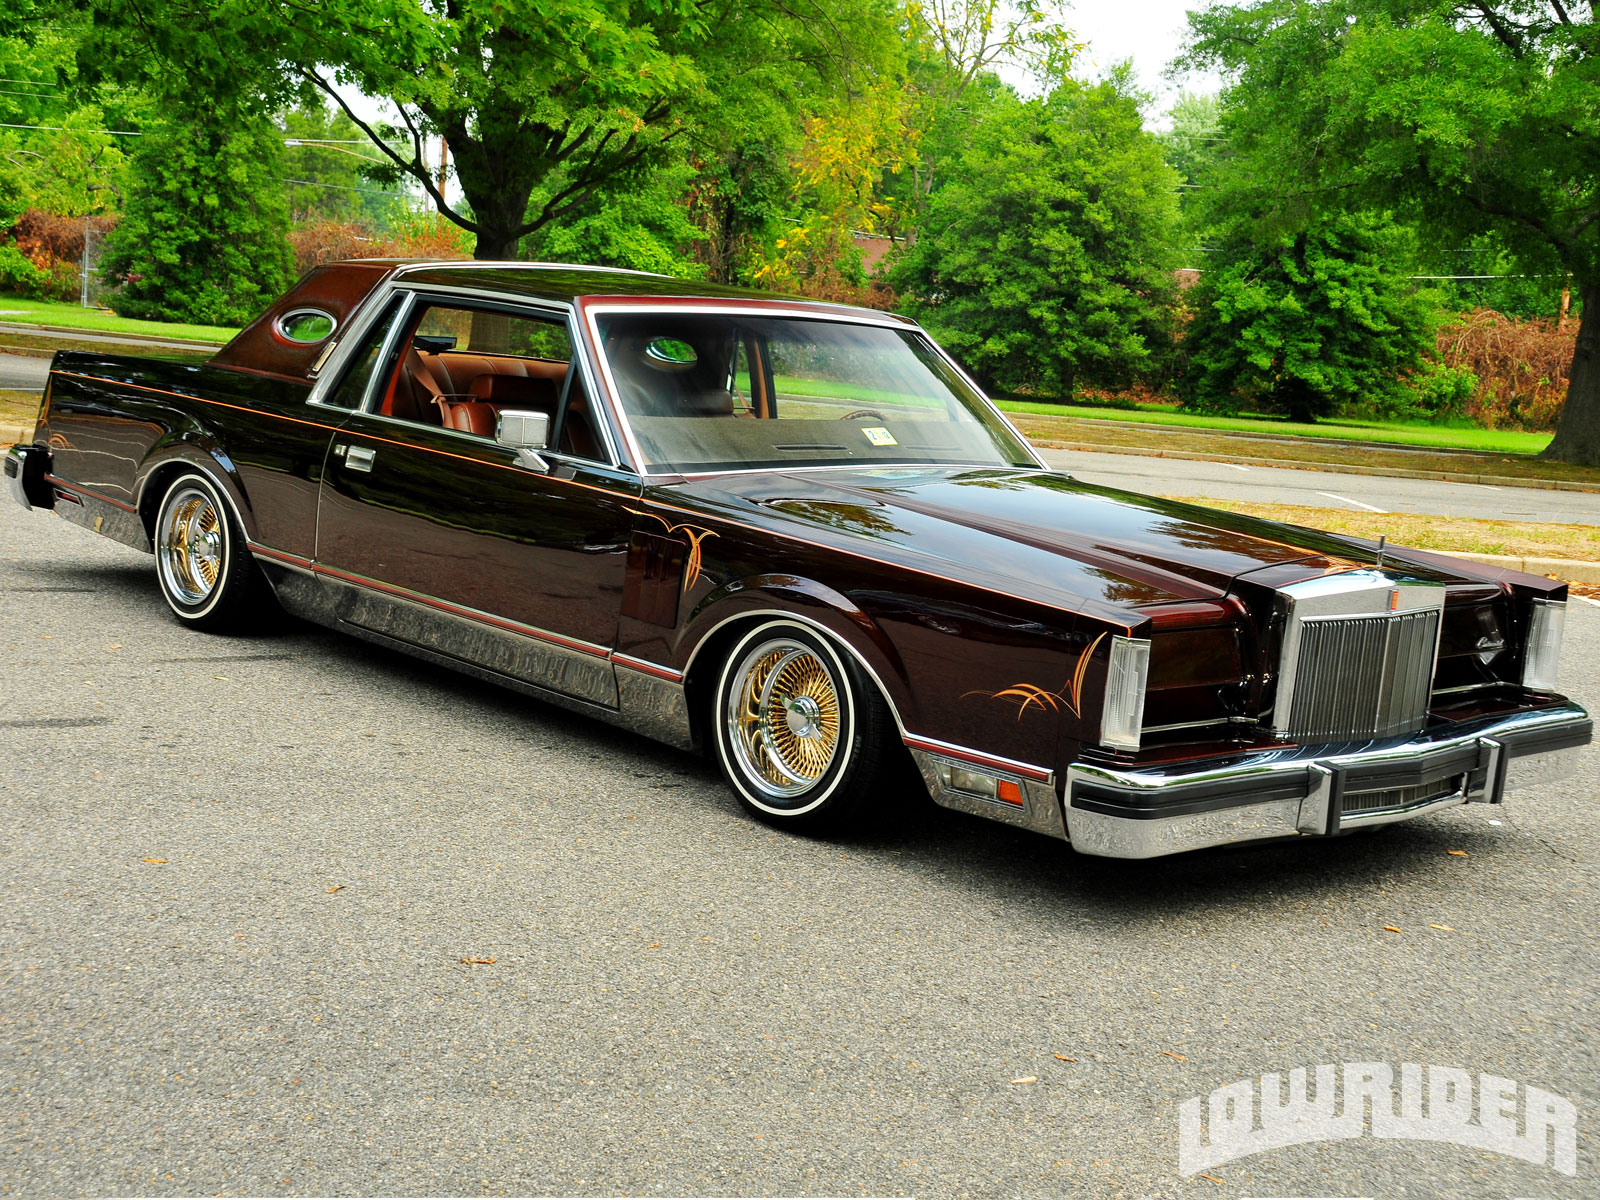 1981 lincoln mark vi information and photos momentcar rh momentcar com 1988 Town Car Lowrider 1988 Lincoln Town Car Lowrider